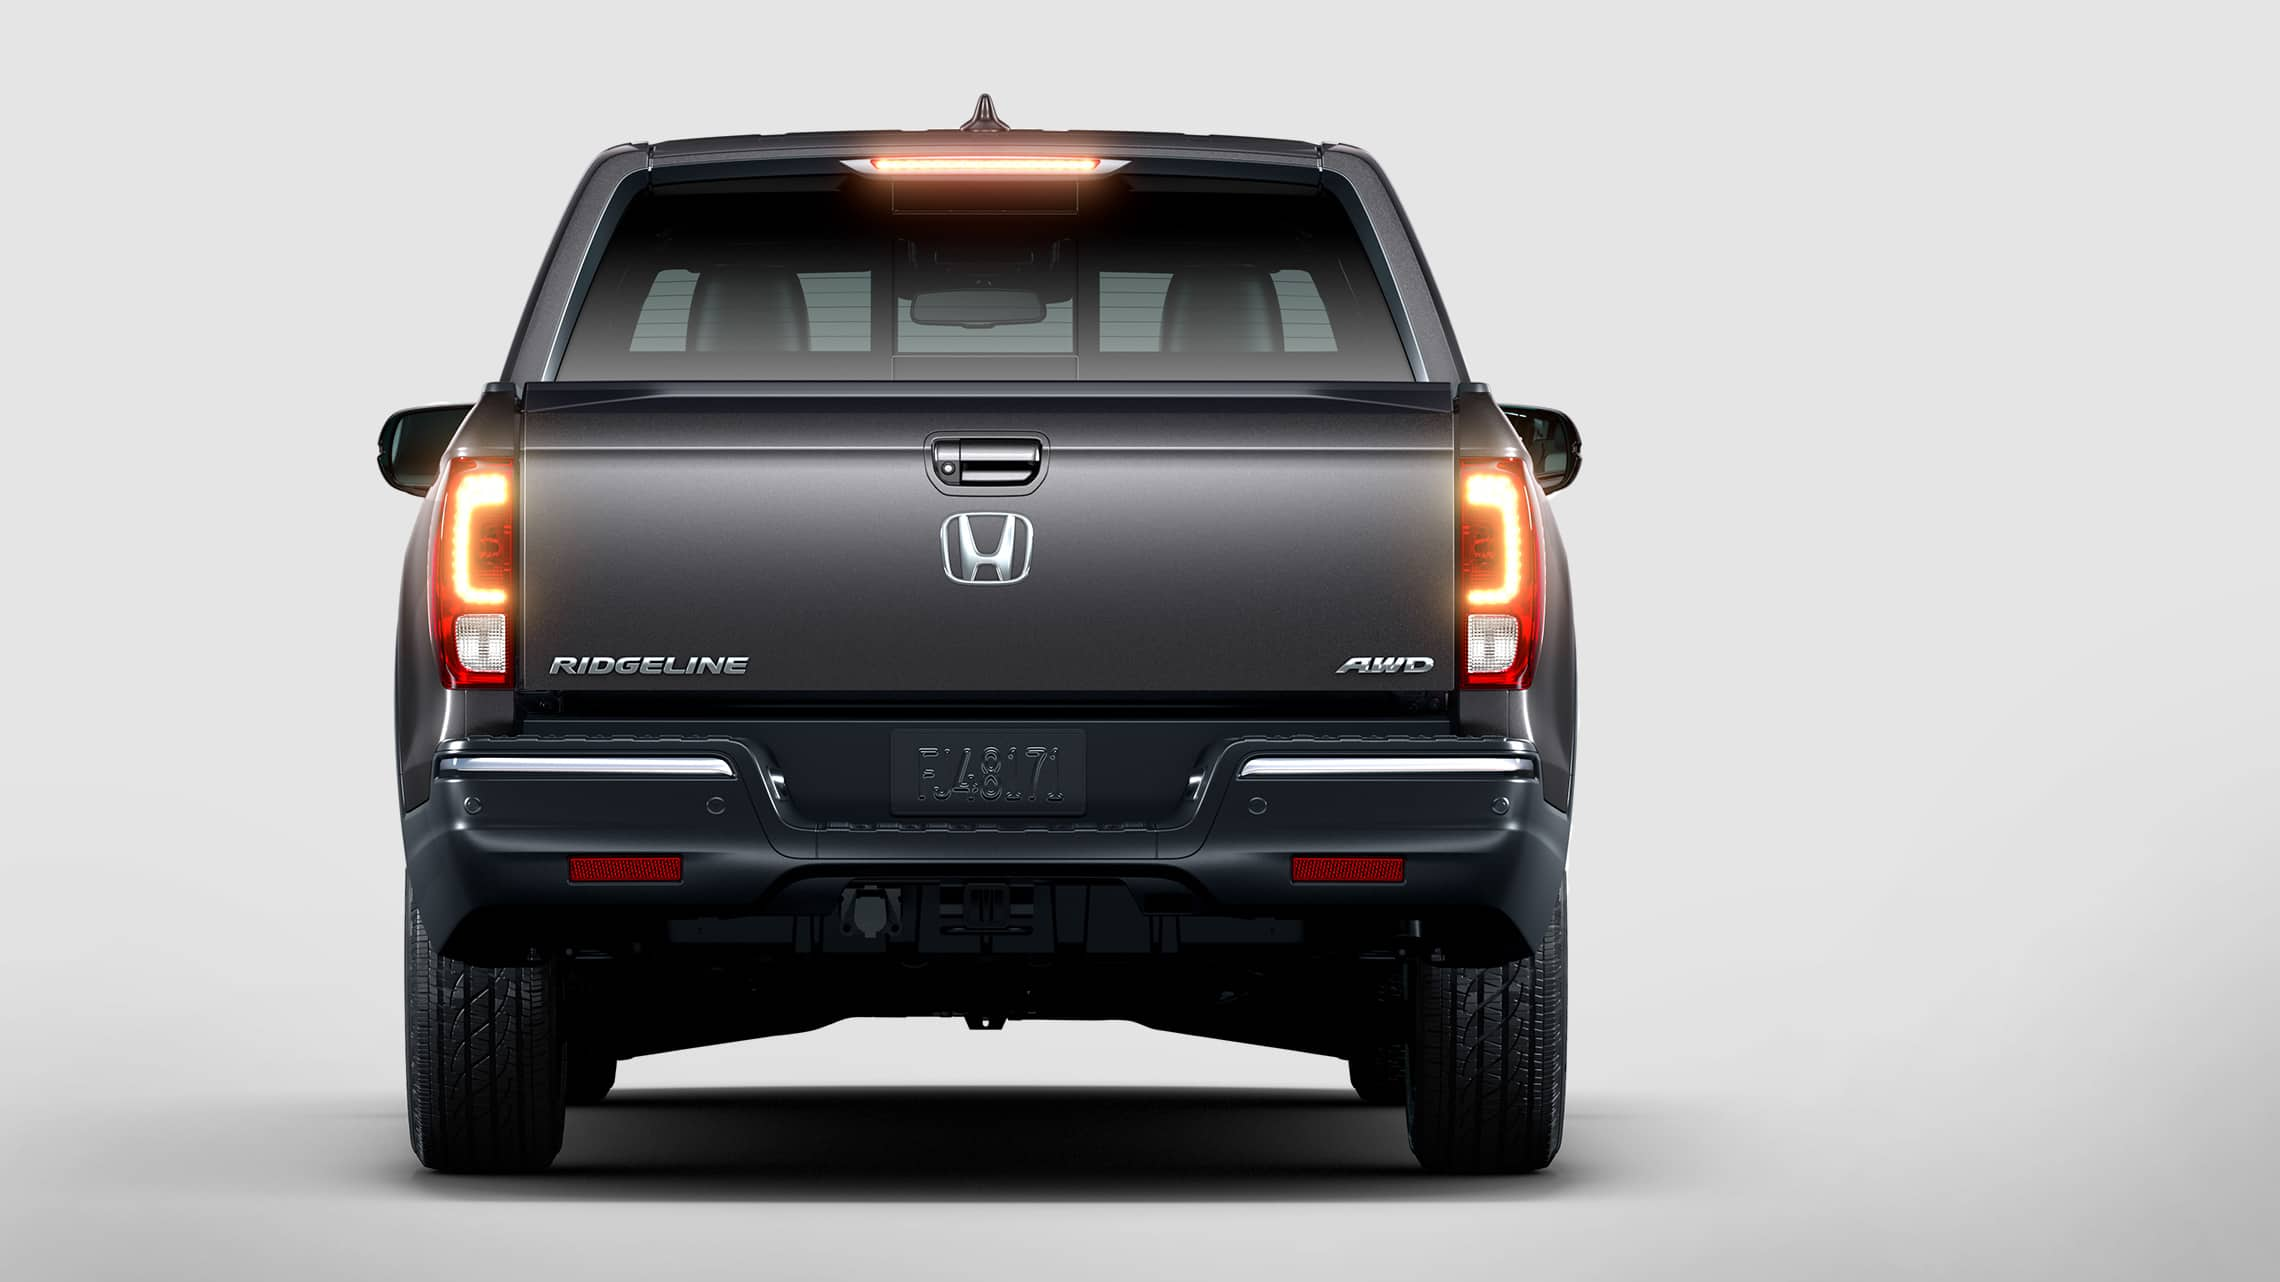 Rear view of 2020 Honda Ridgeline RTL-E in Modern Steel Metallic displaying LED taillights.